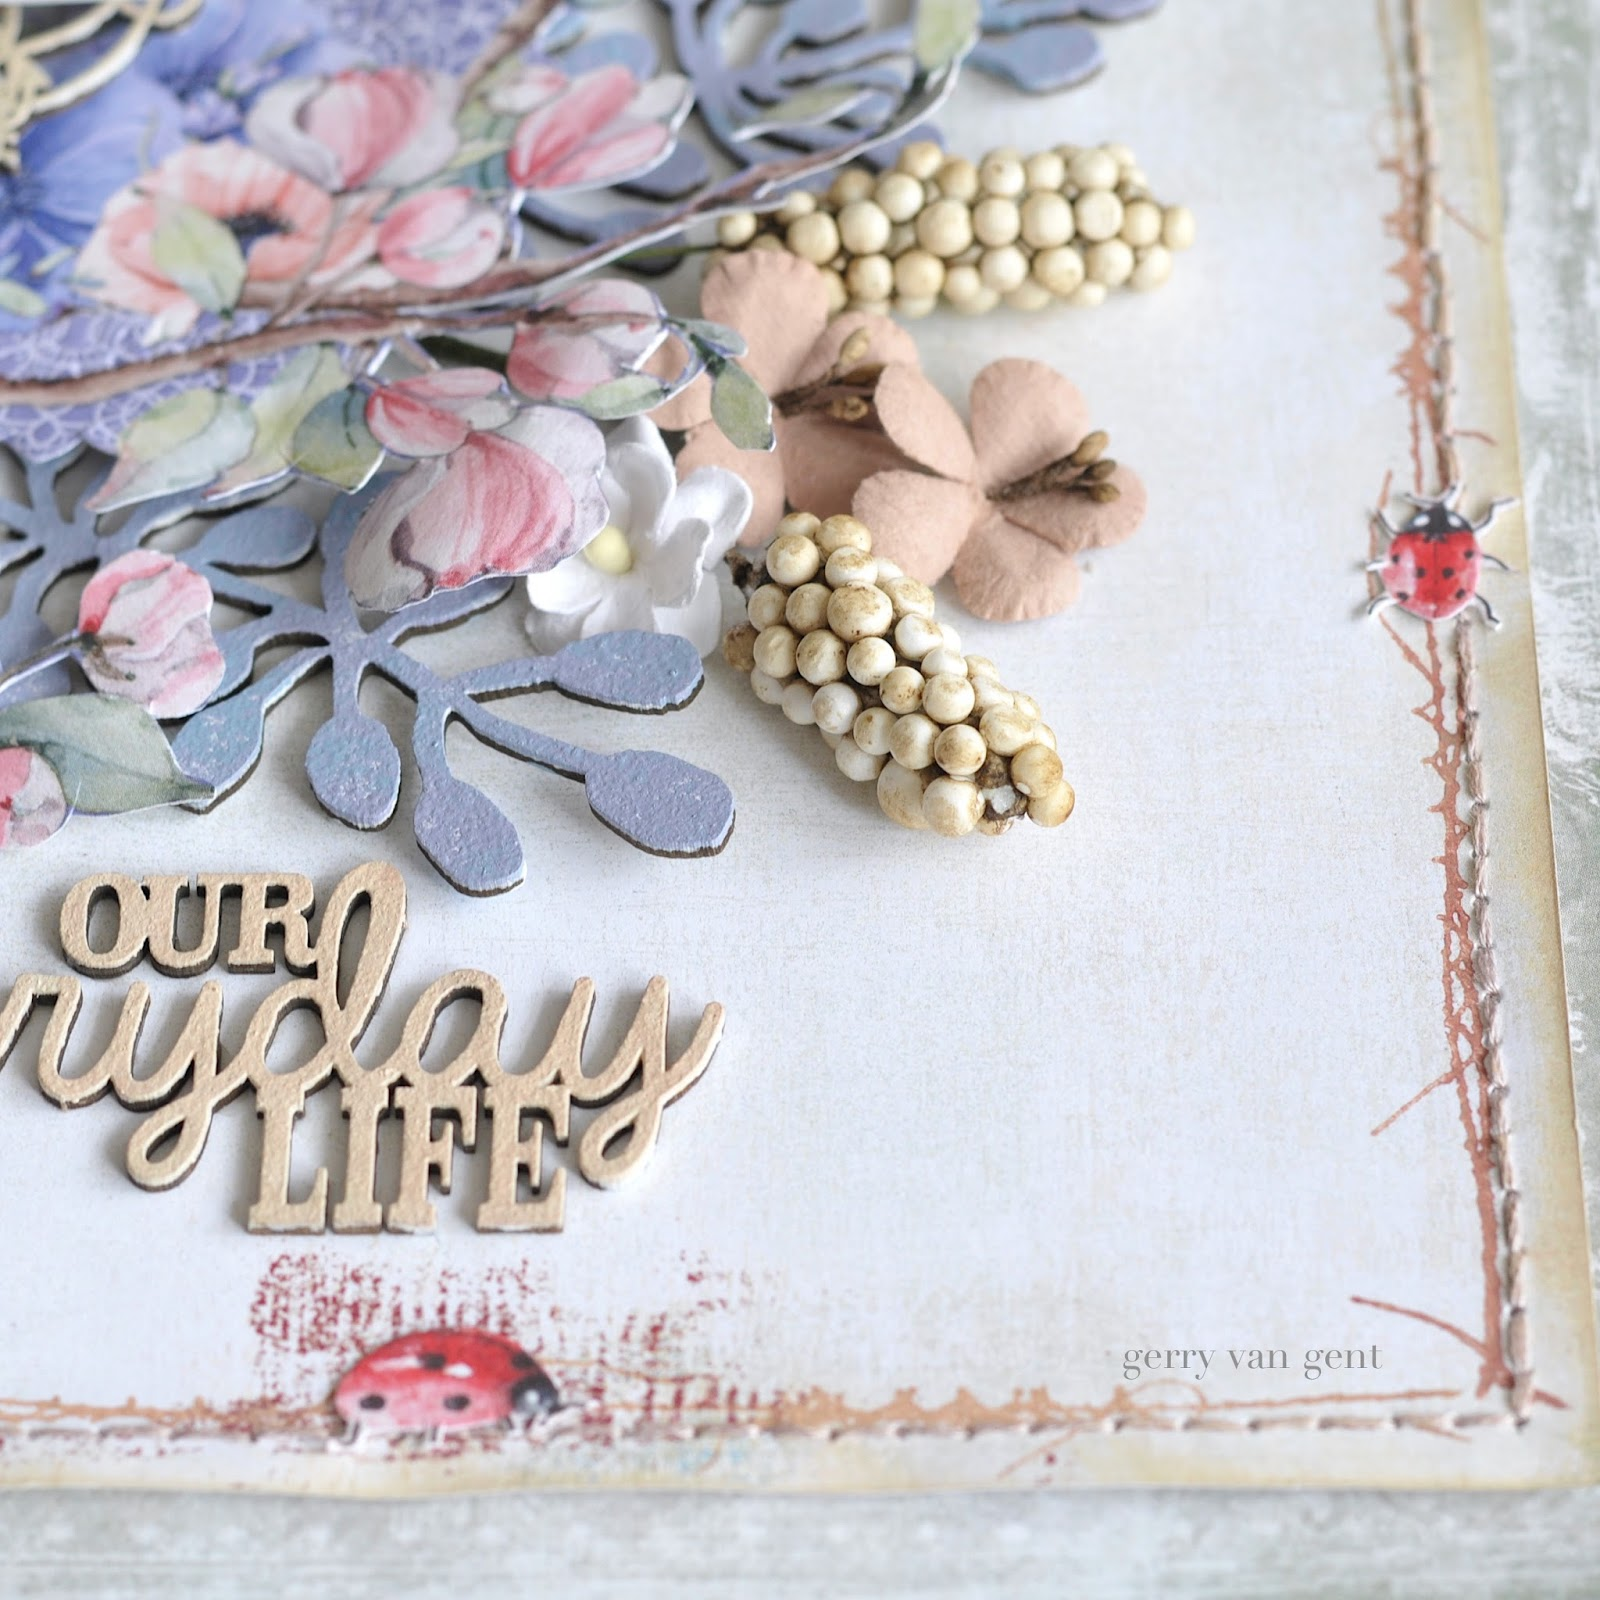 Gerry van Gent: Our Everyday Life {Dusty Attic}